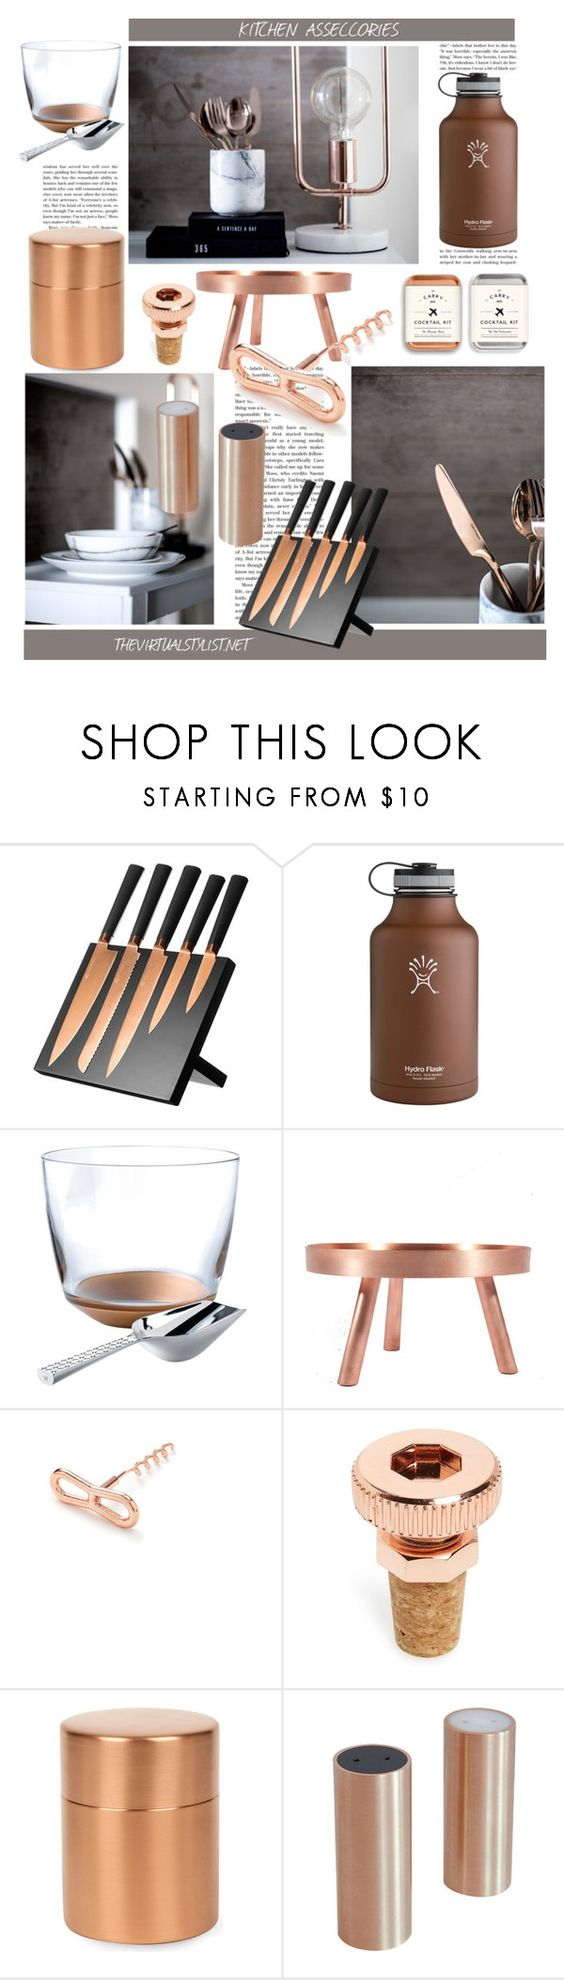 """KITCHEN ACCESSORIES"" by efashiondiva7 ❤ liked on Polyvore featuring interior, interiors, interior design, Zuhause, home decor, interior decorating, Viners, Wedgwood, fferrone design und Forever 21"